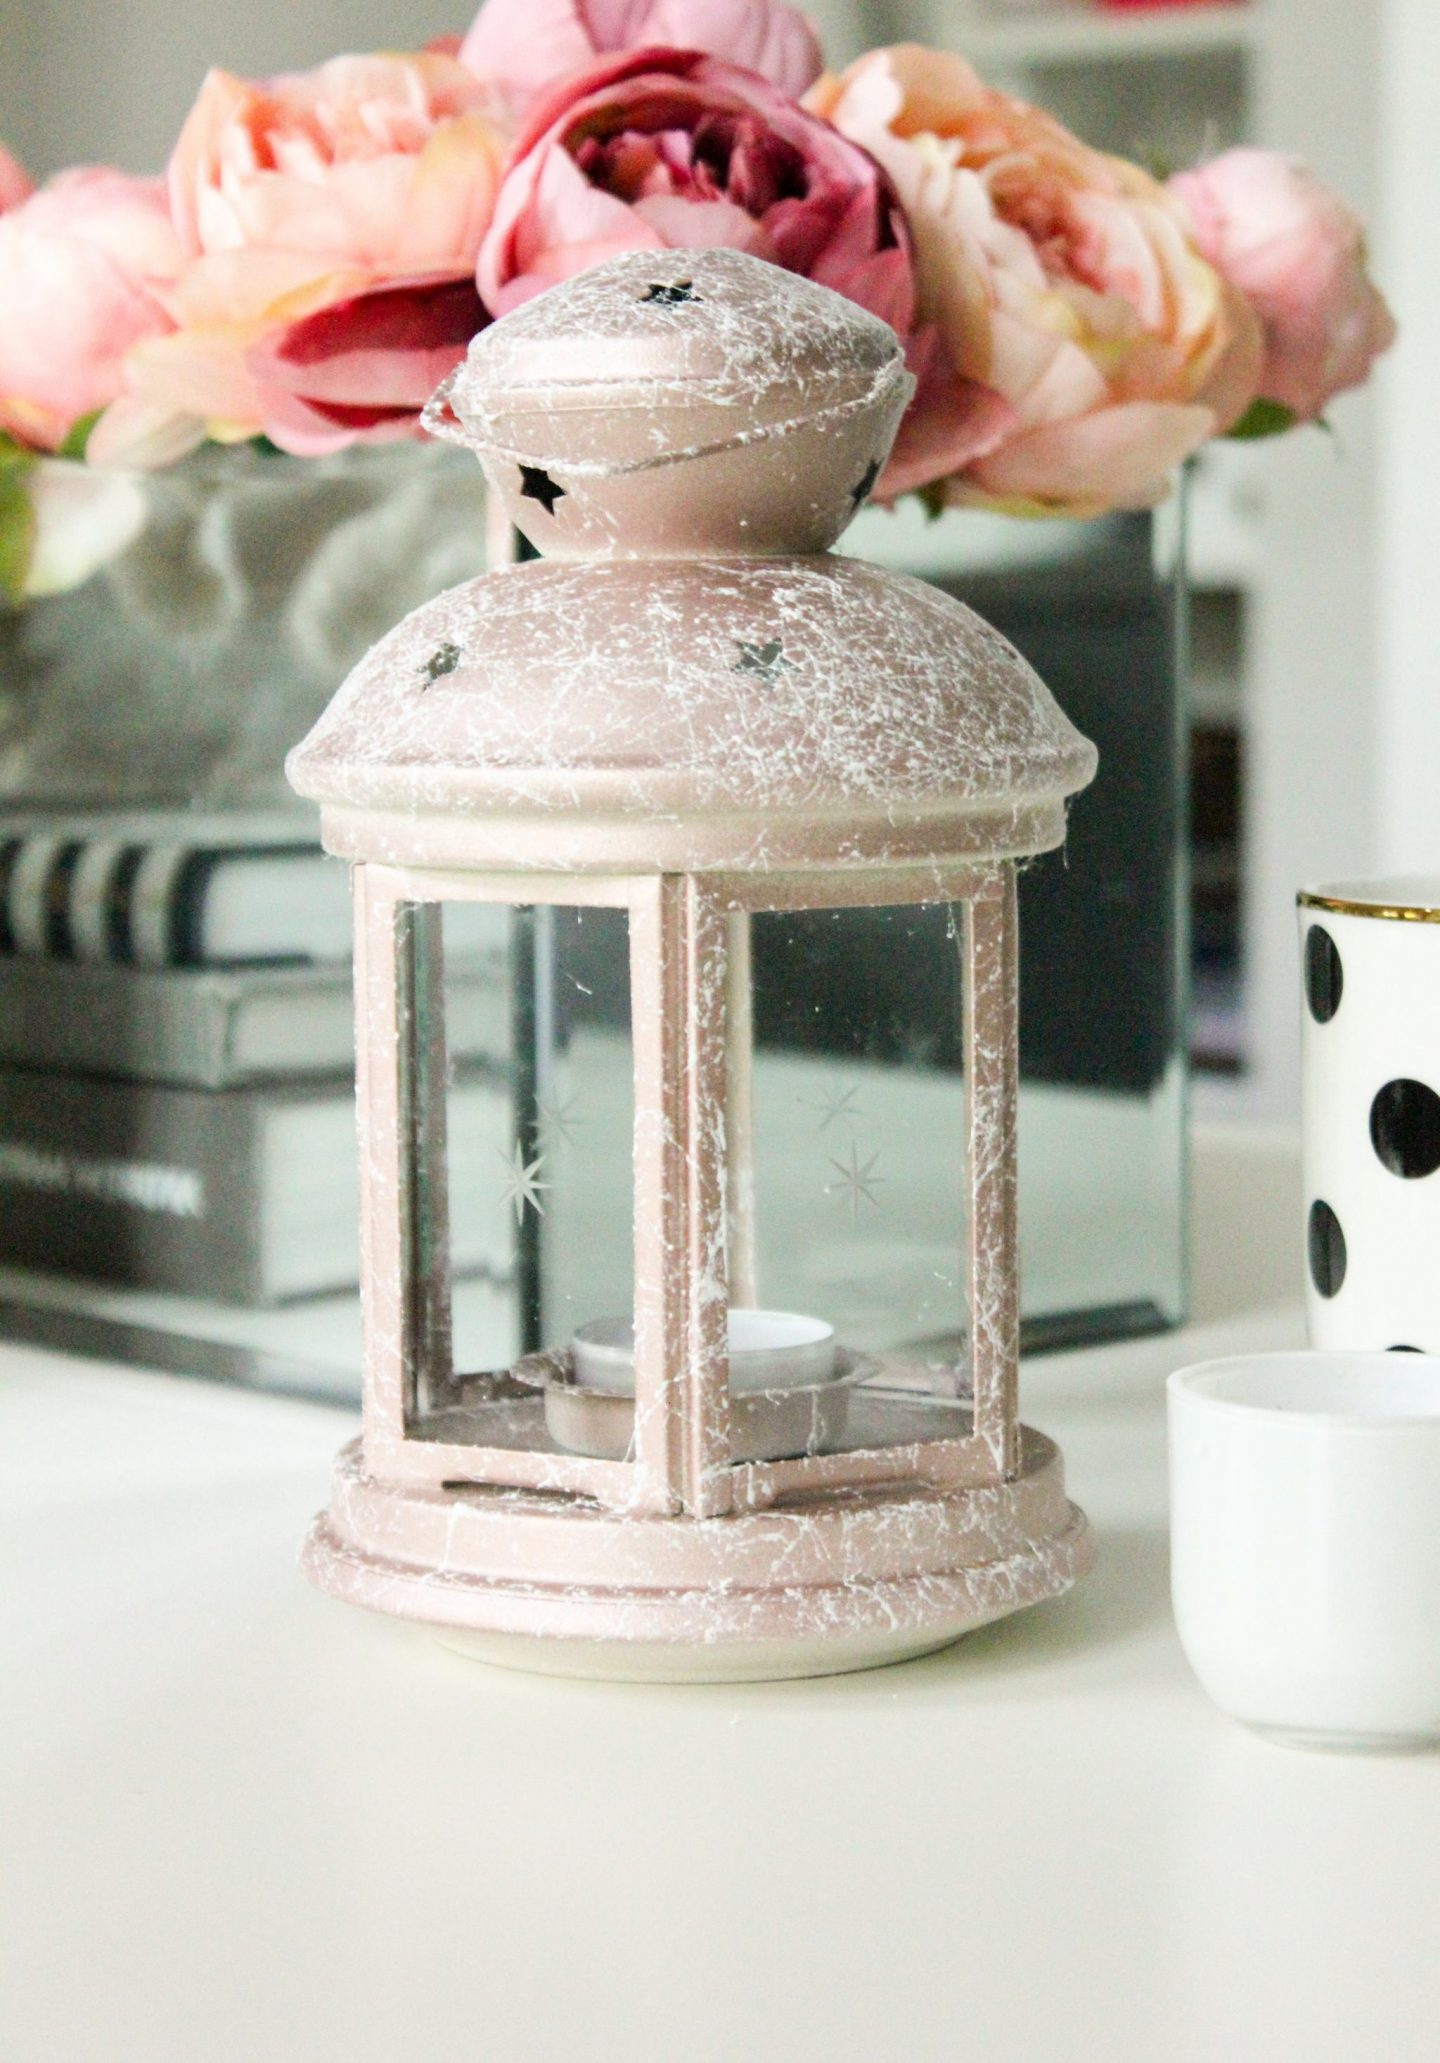 DIY PROJECTS TO PUT THE PERSONAL INTO YOUR WEDDING DECOR